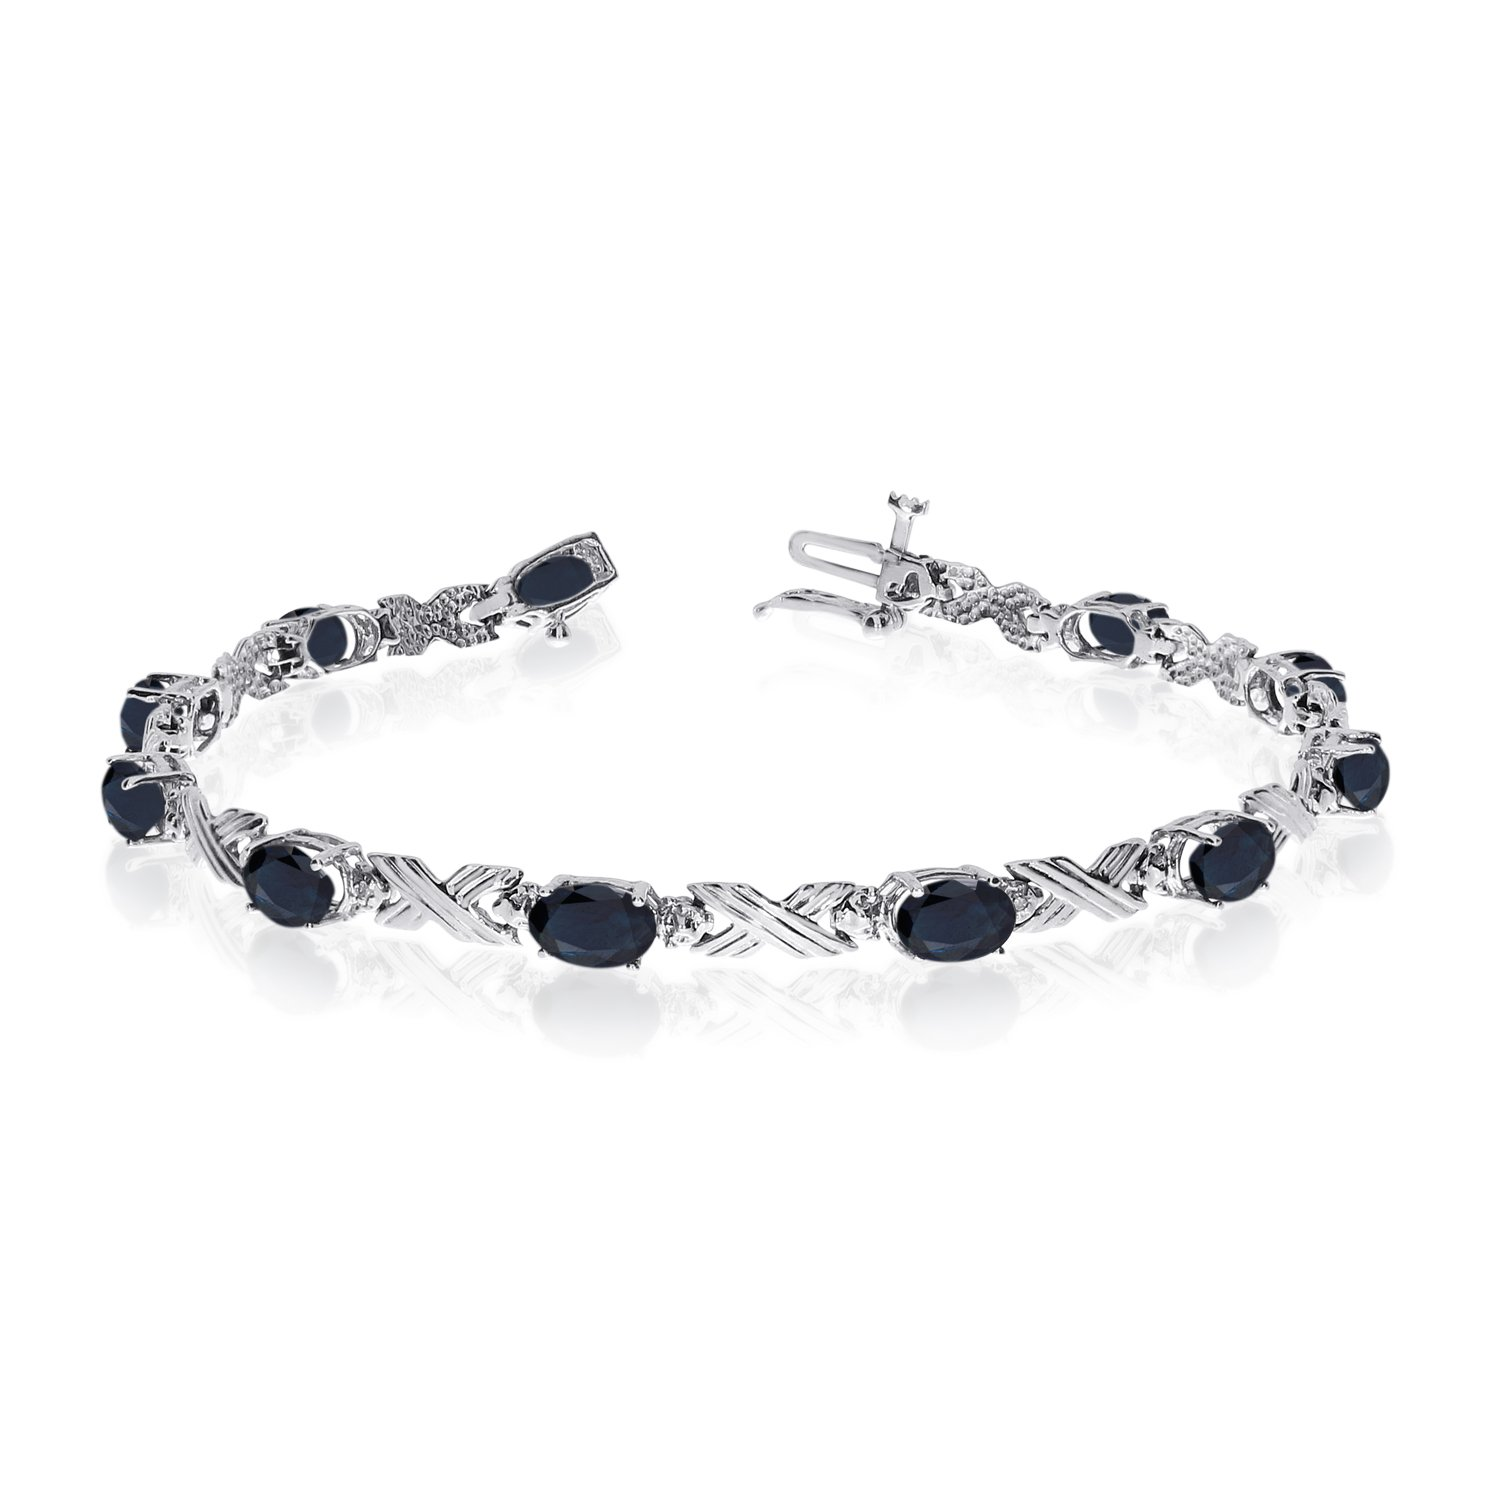 14K White Gold Oval Sapphire and Diamond Bracelet (7 Inch Length)